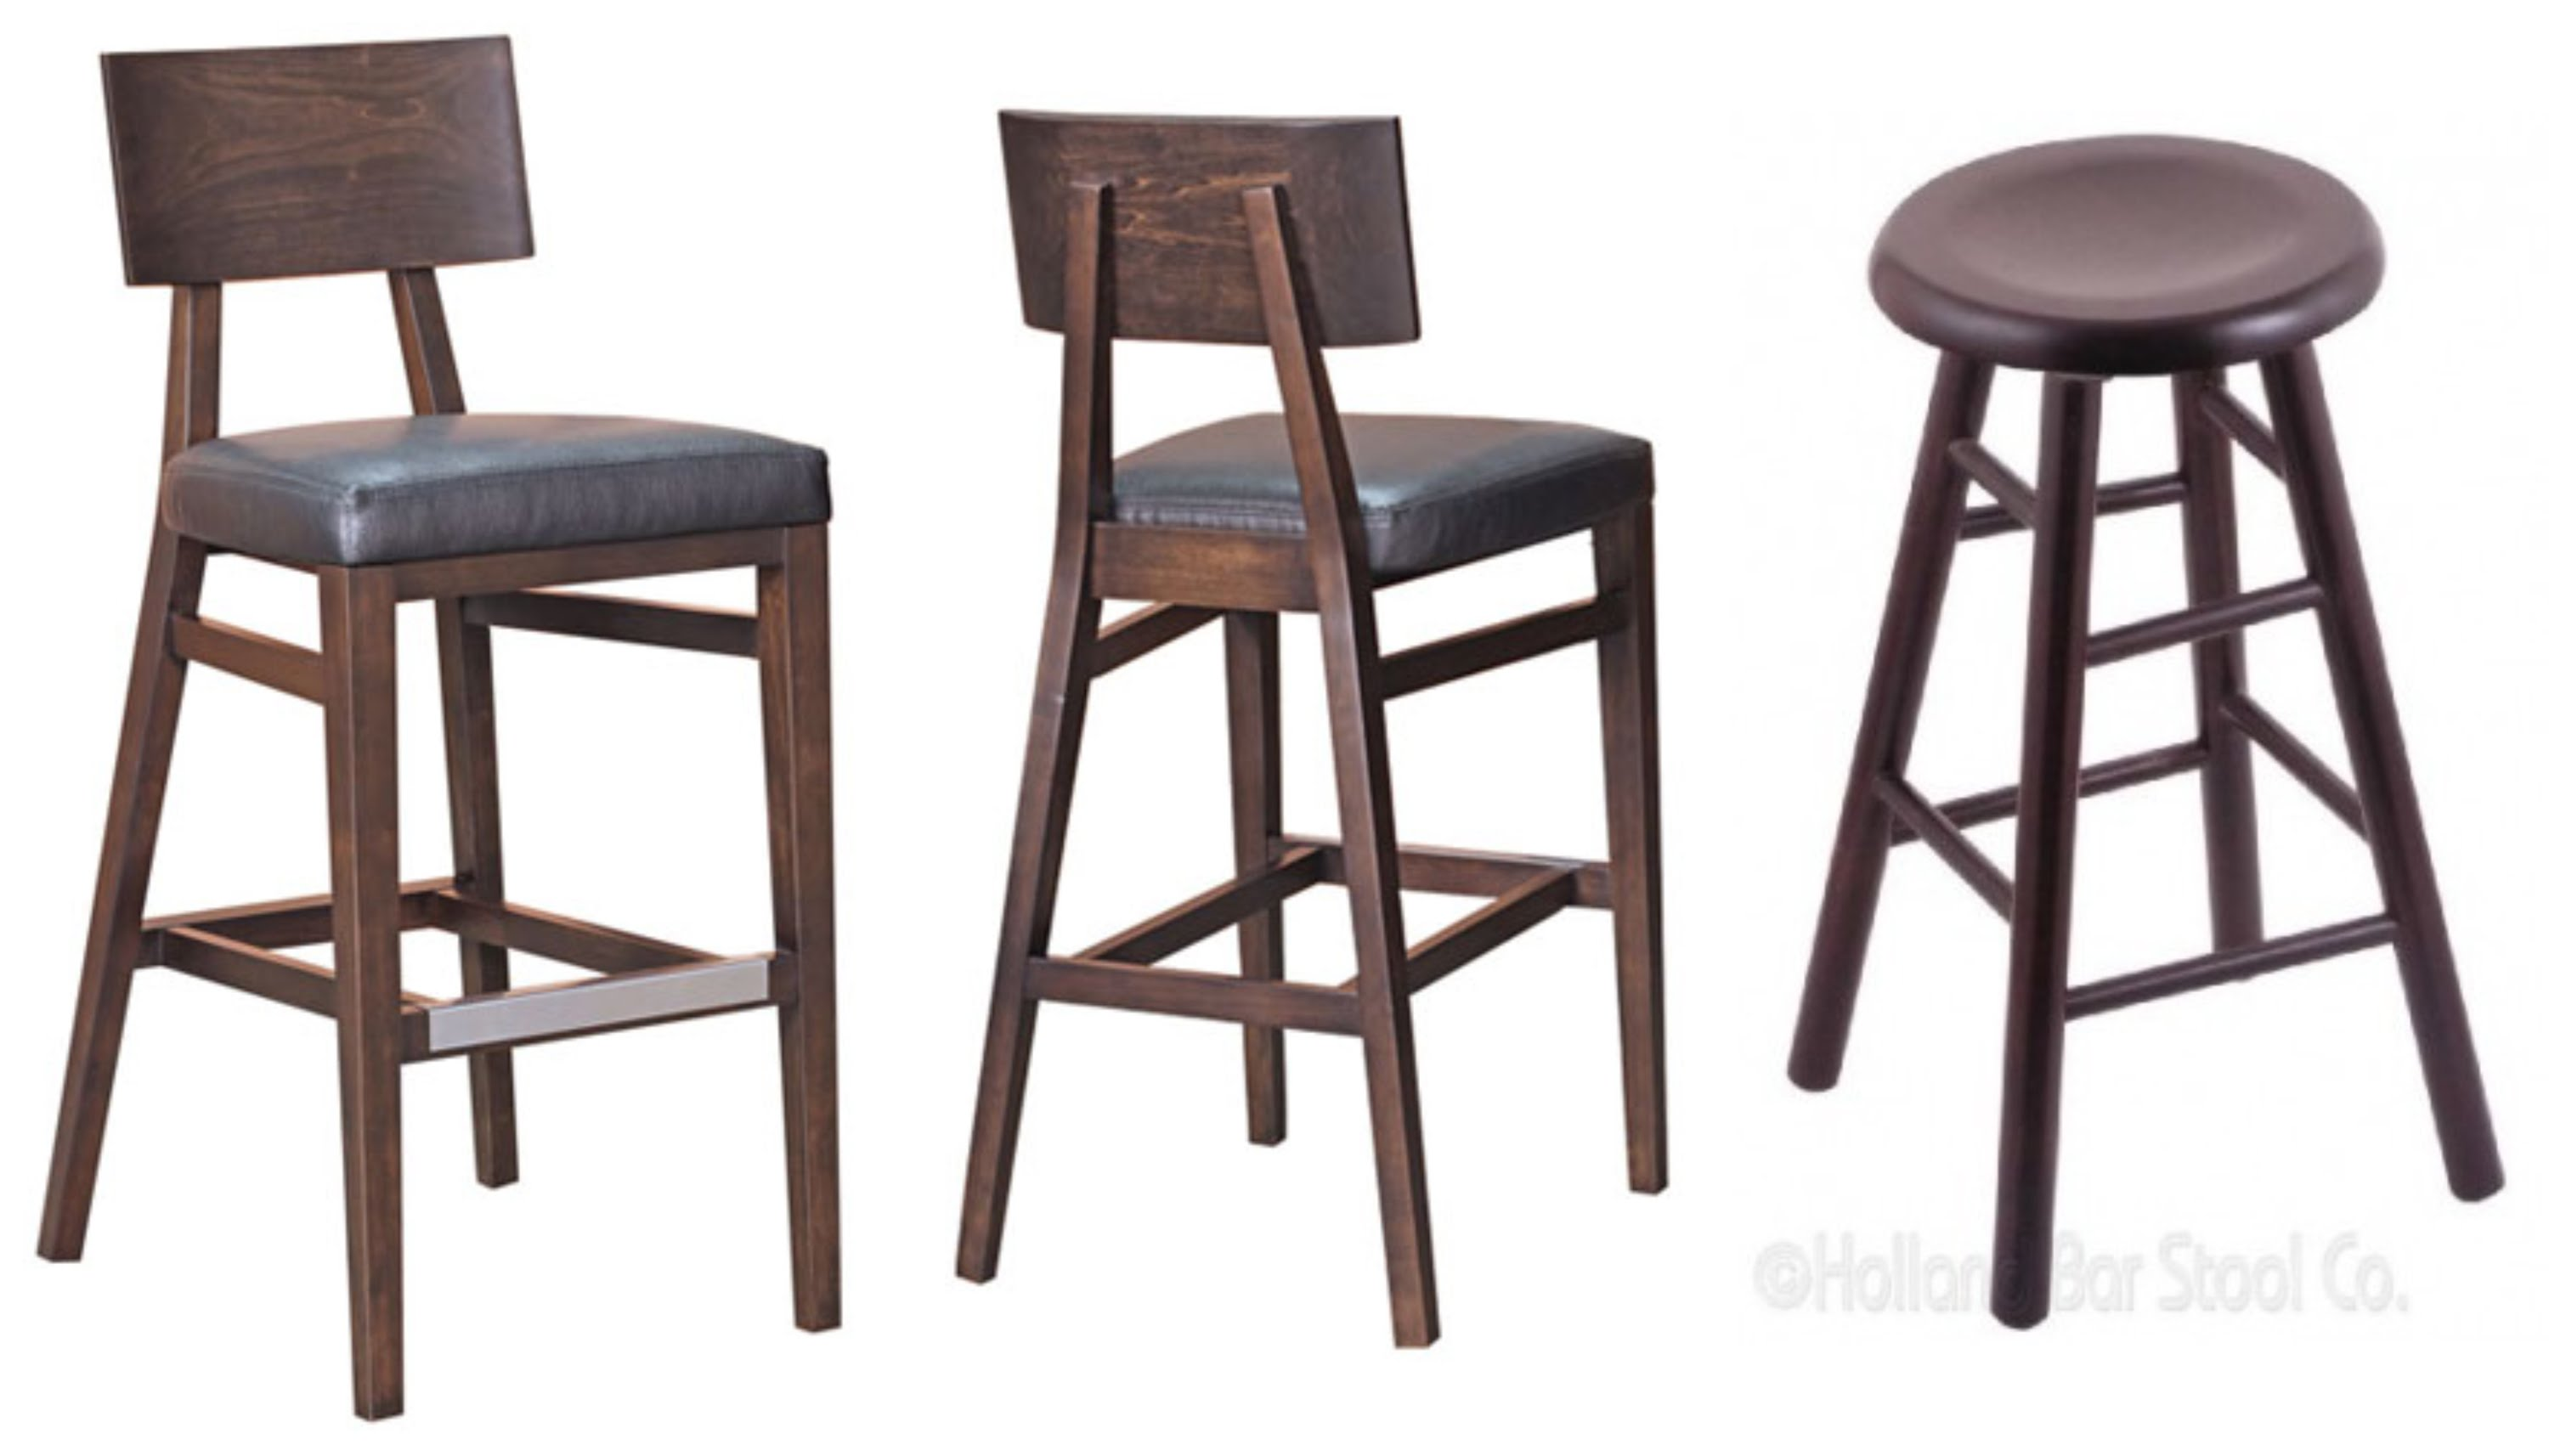 Extra Tall Bar Stools